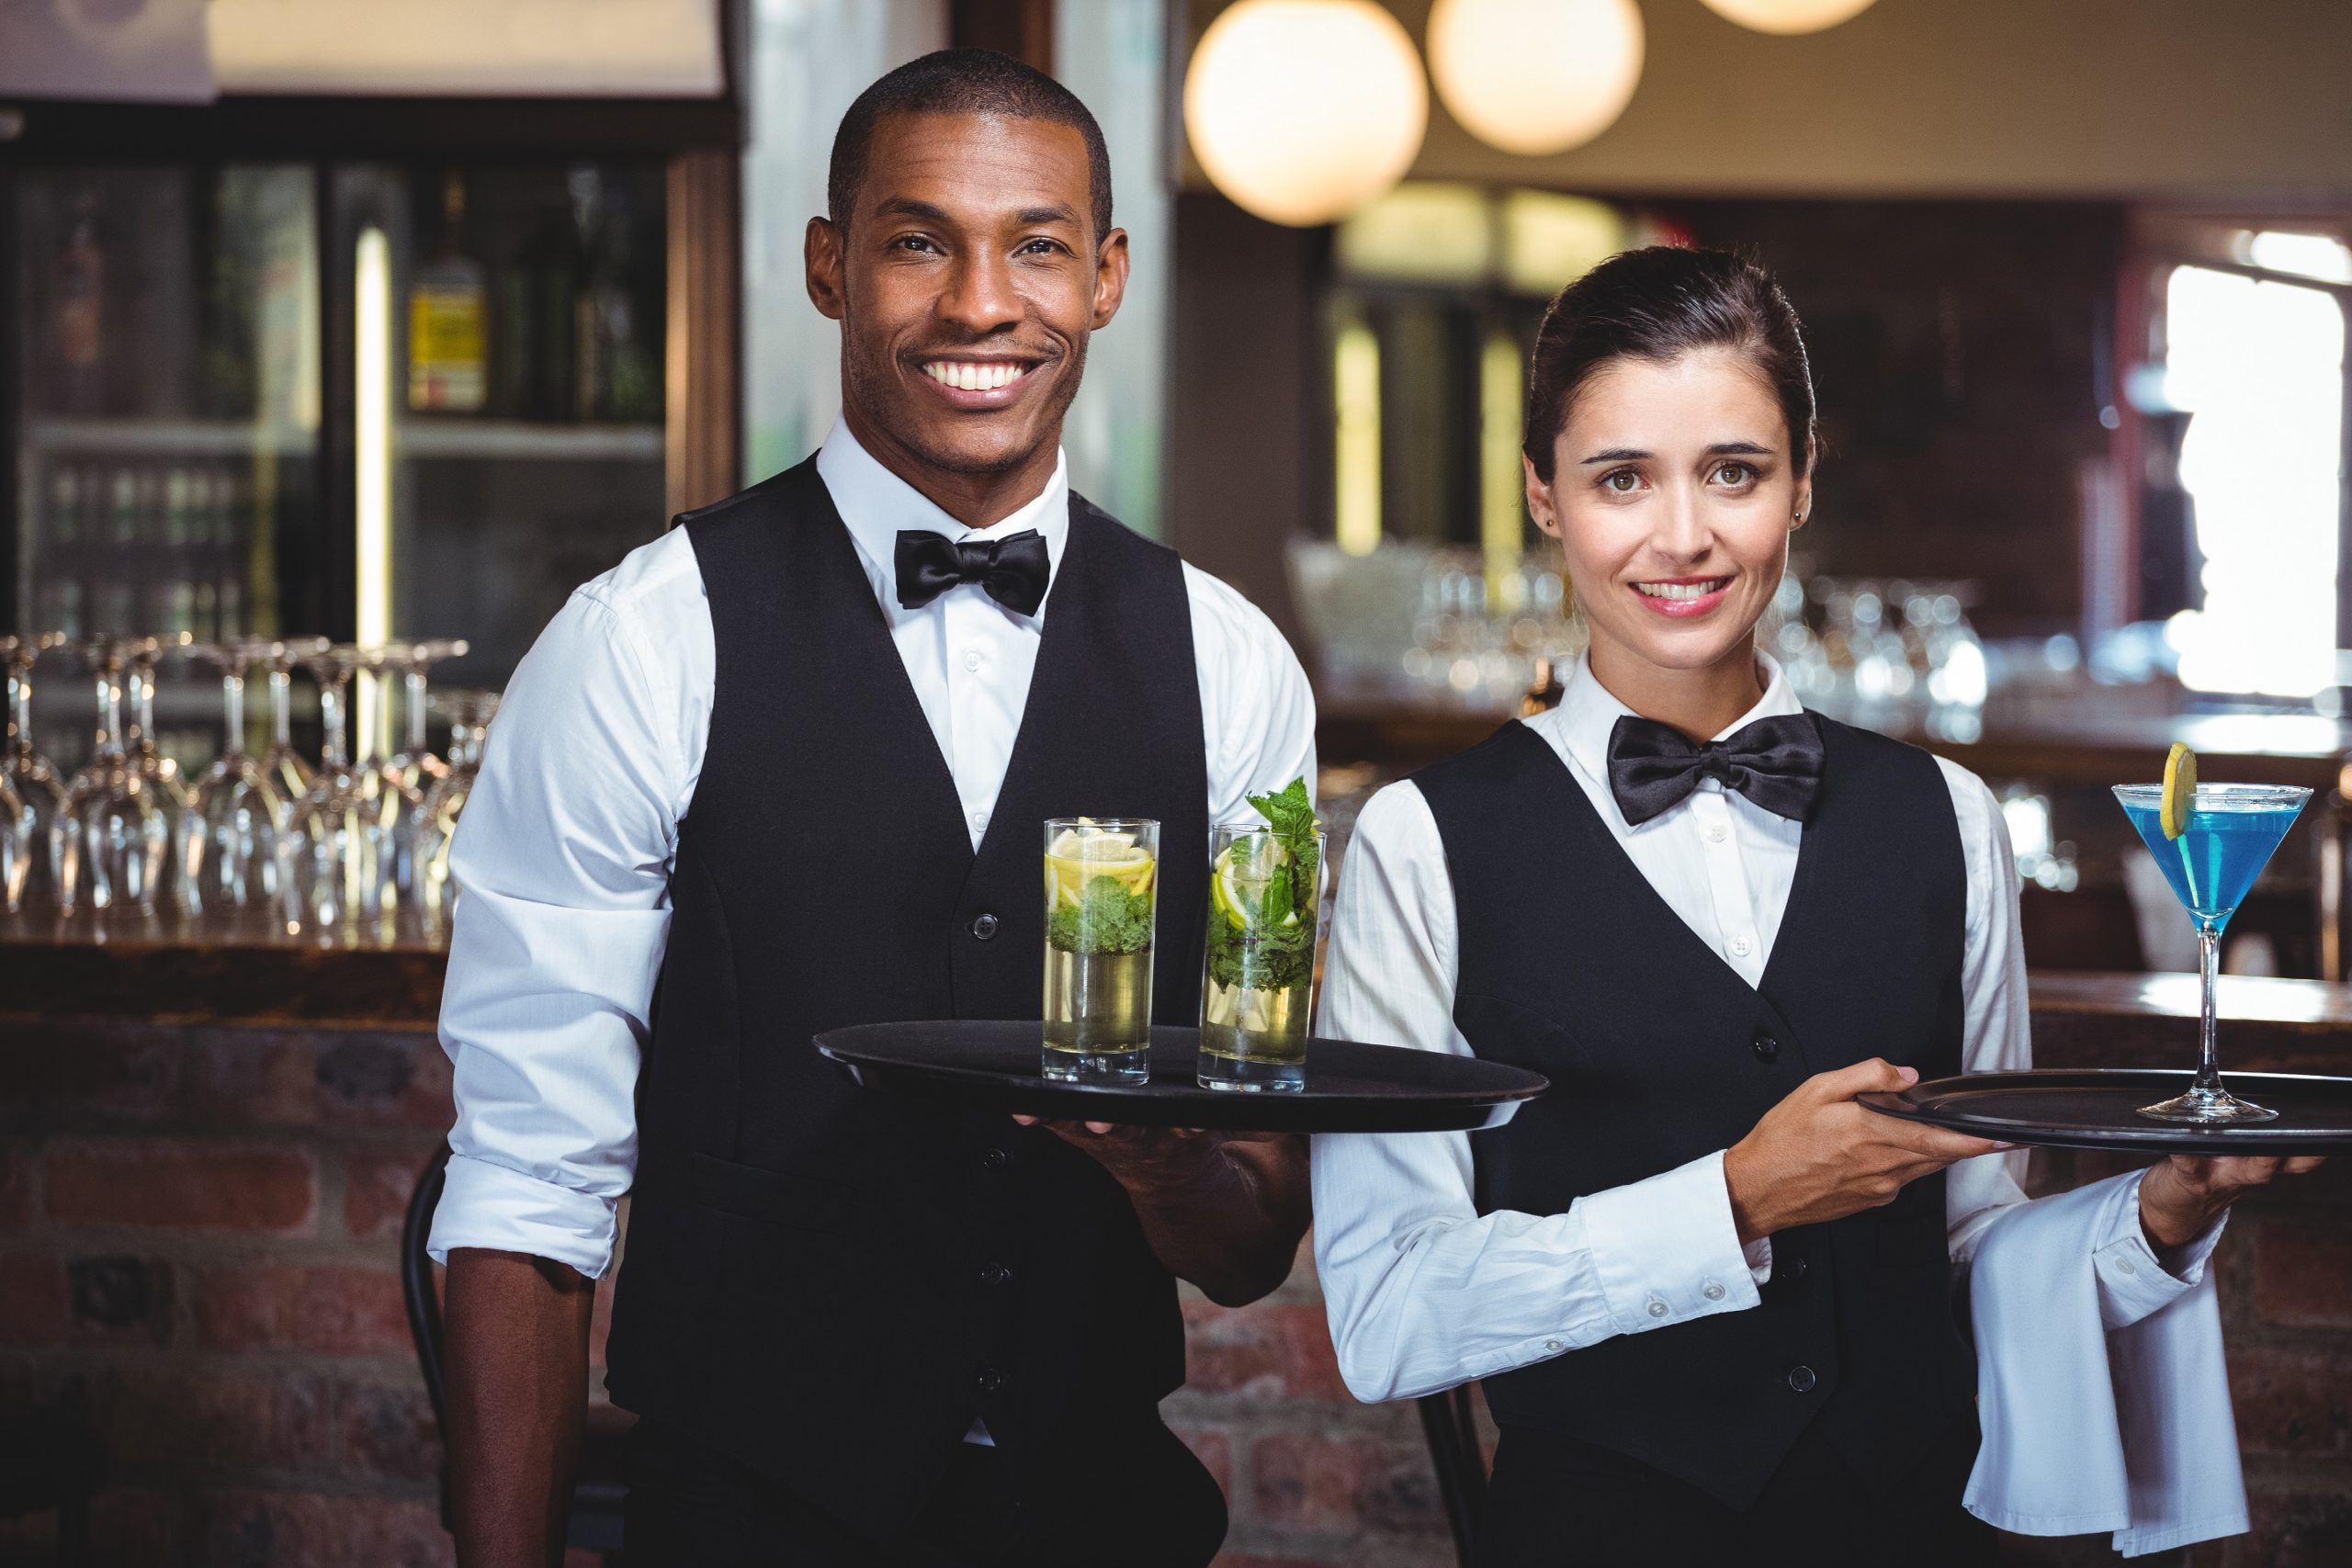 Waiter needed in Ireland